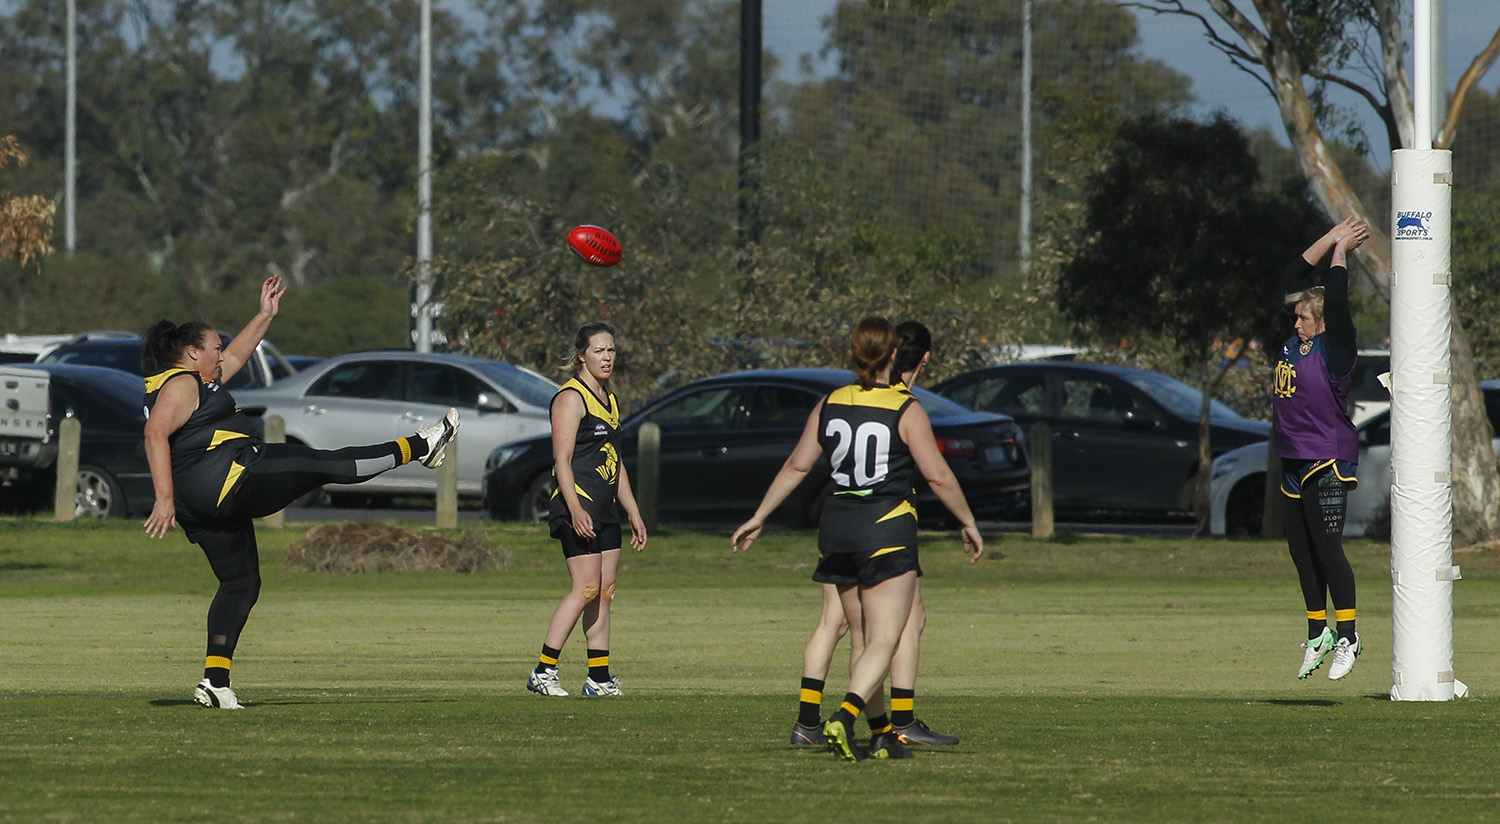 Game one in the first season. Emery provided a powerful presence at full forward for Waverley Warriors.